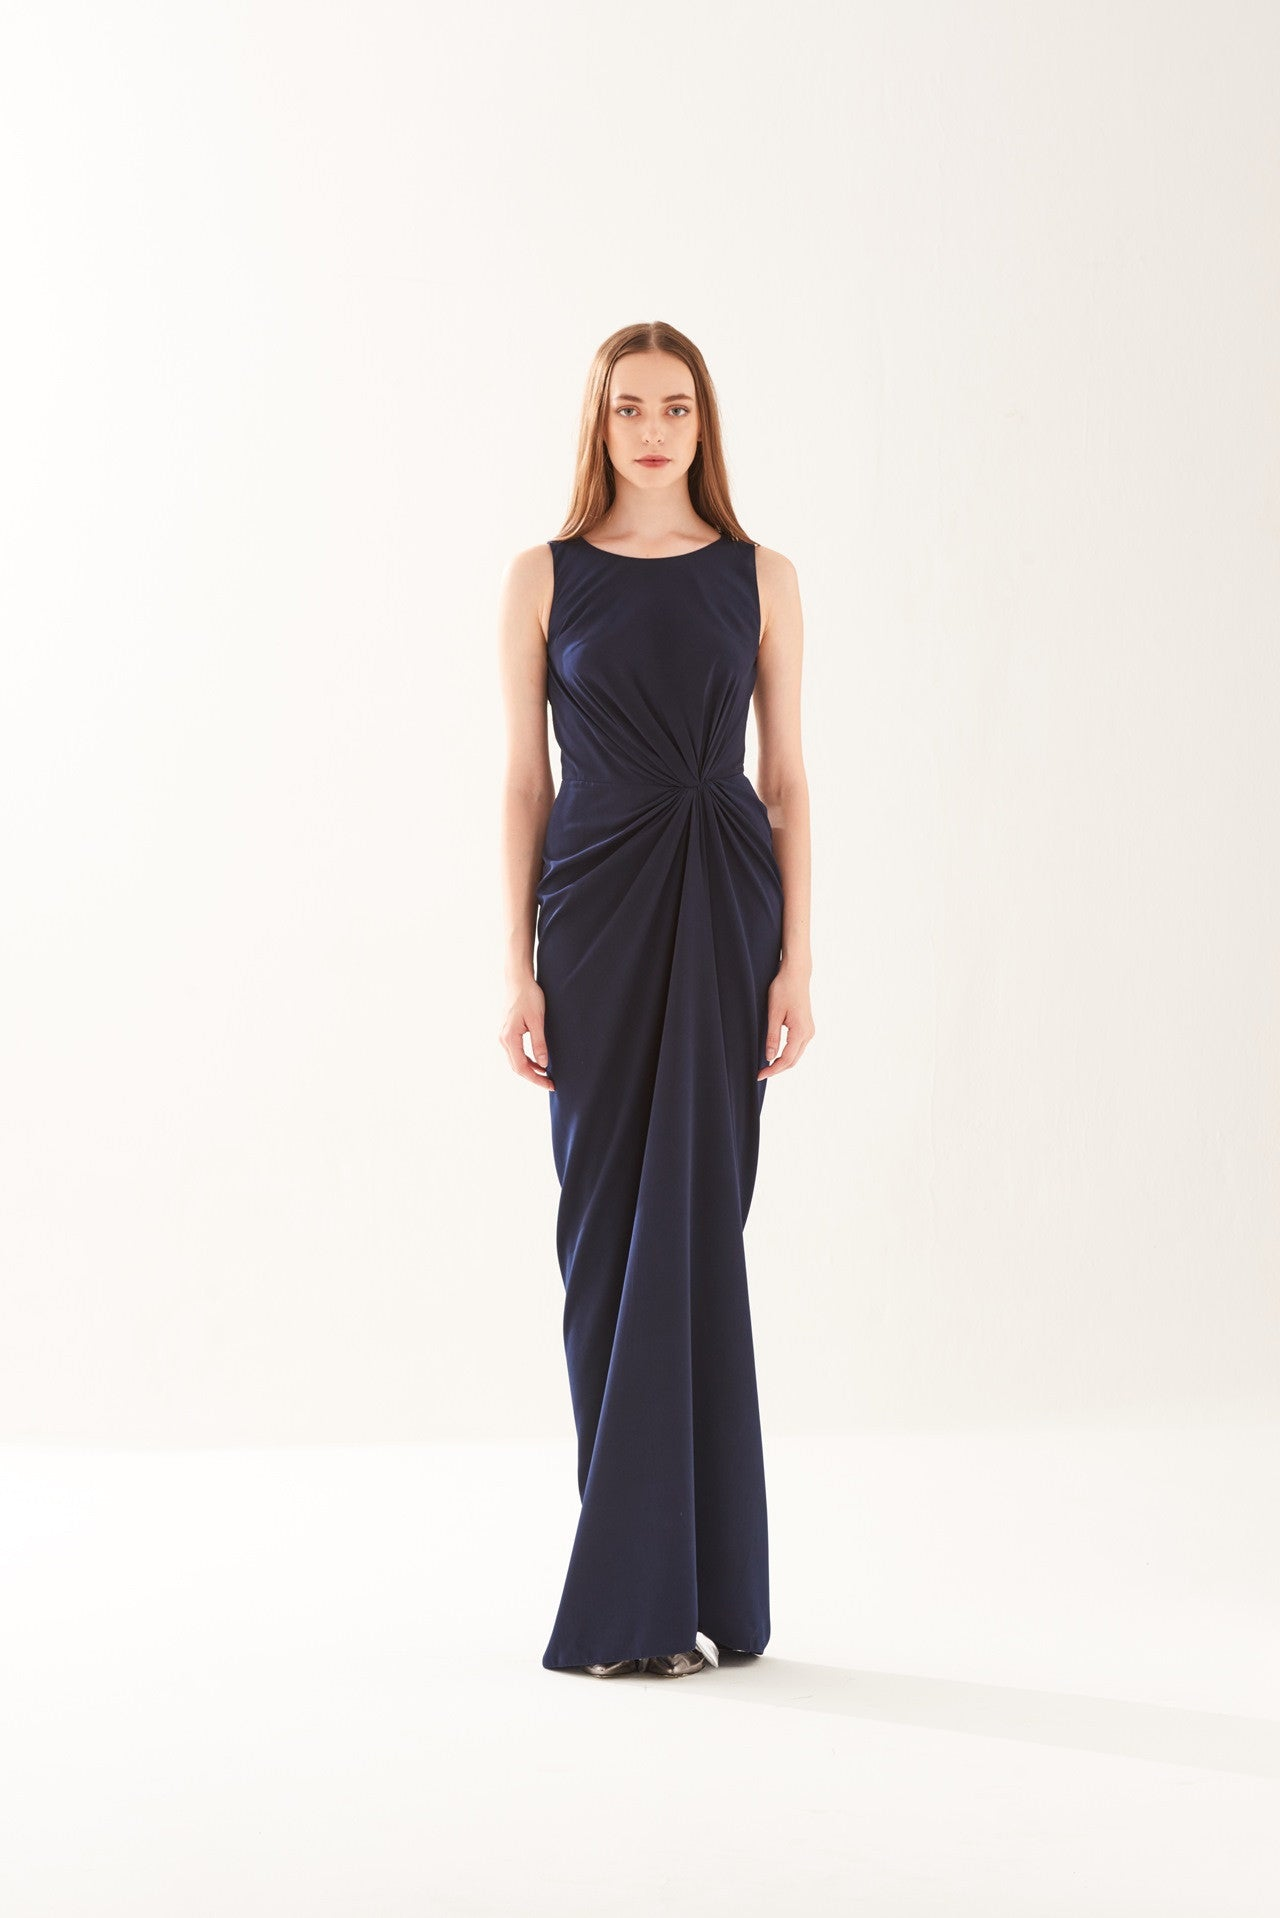 ZS021715DNV : DRAPED DRESS